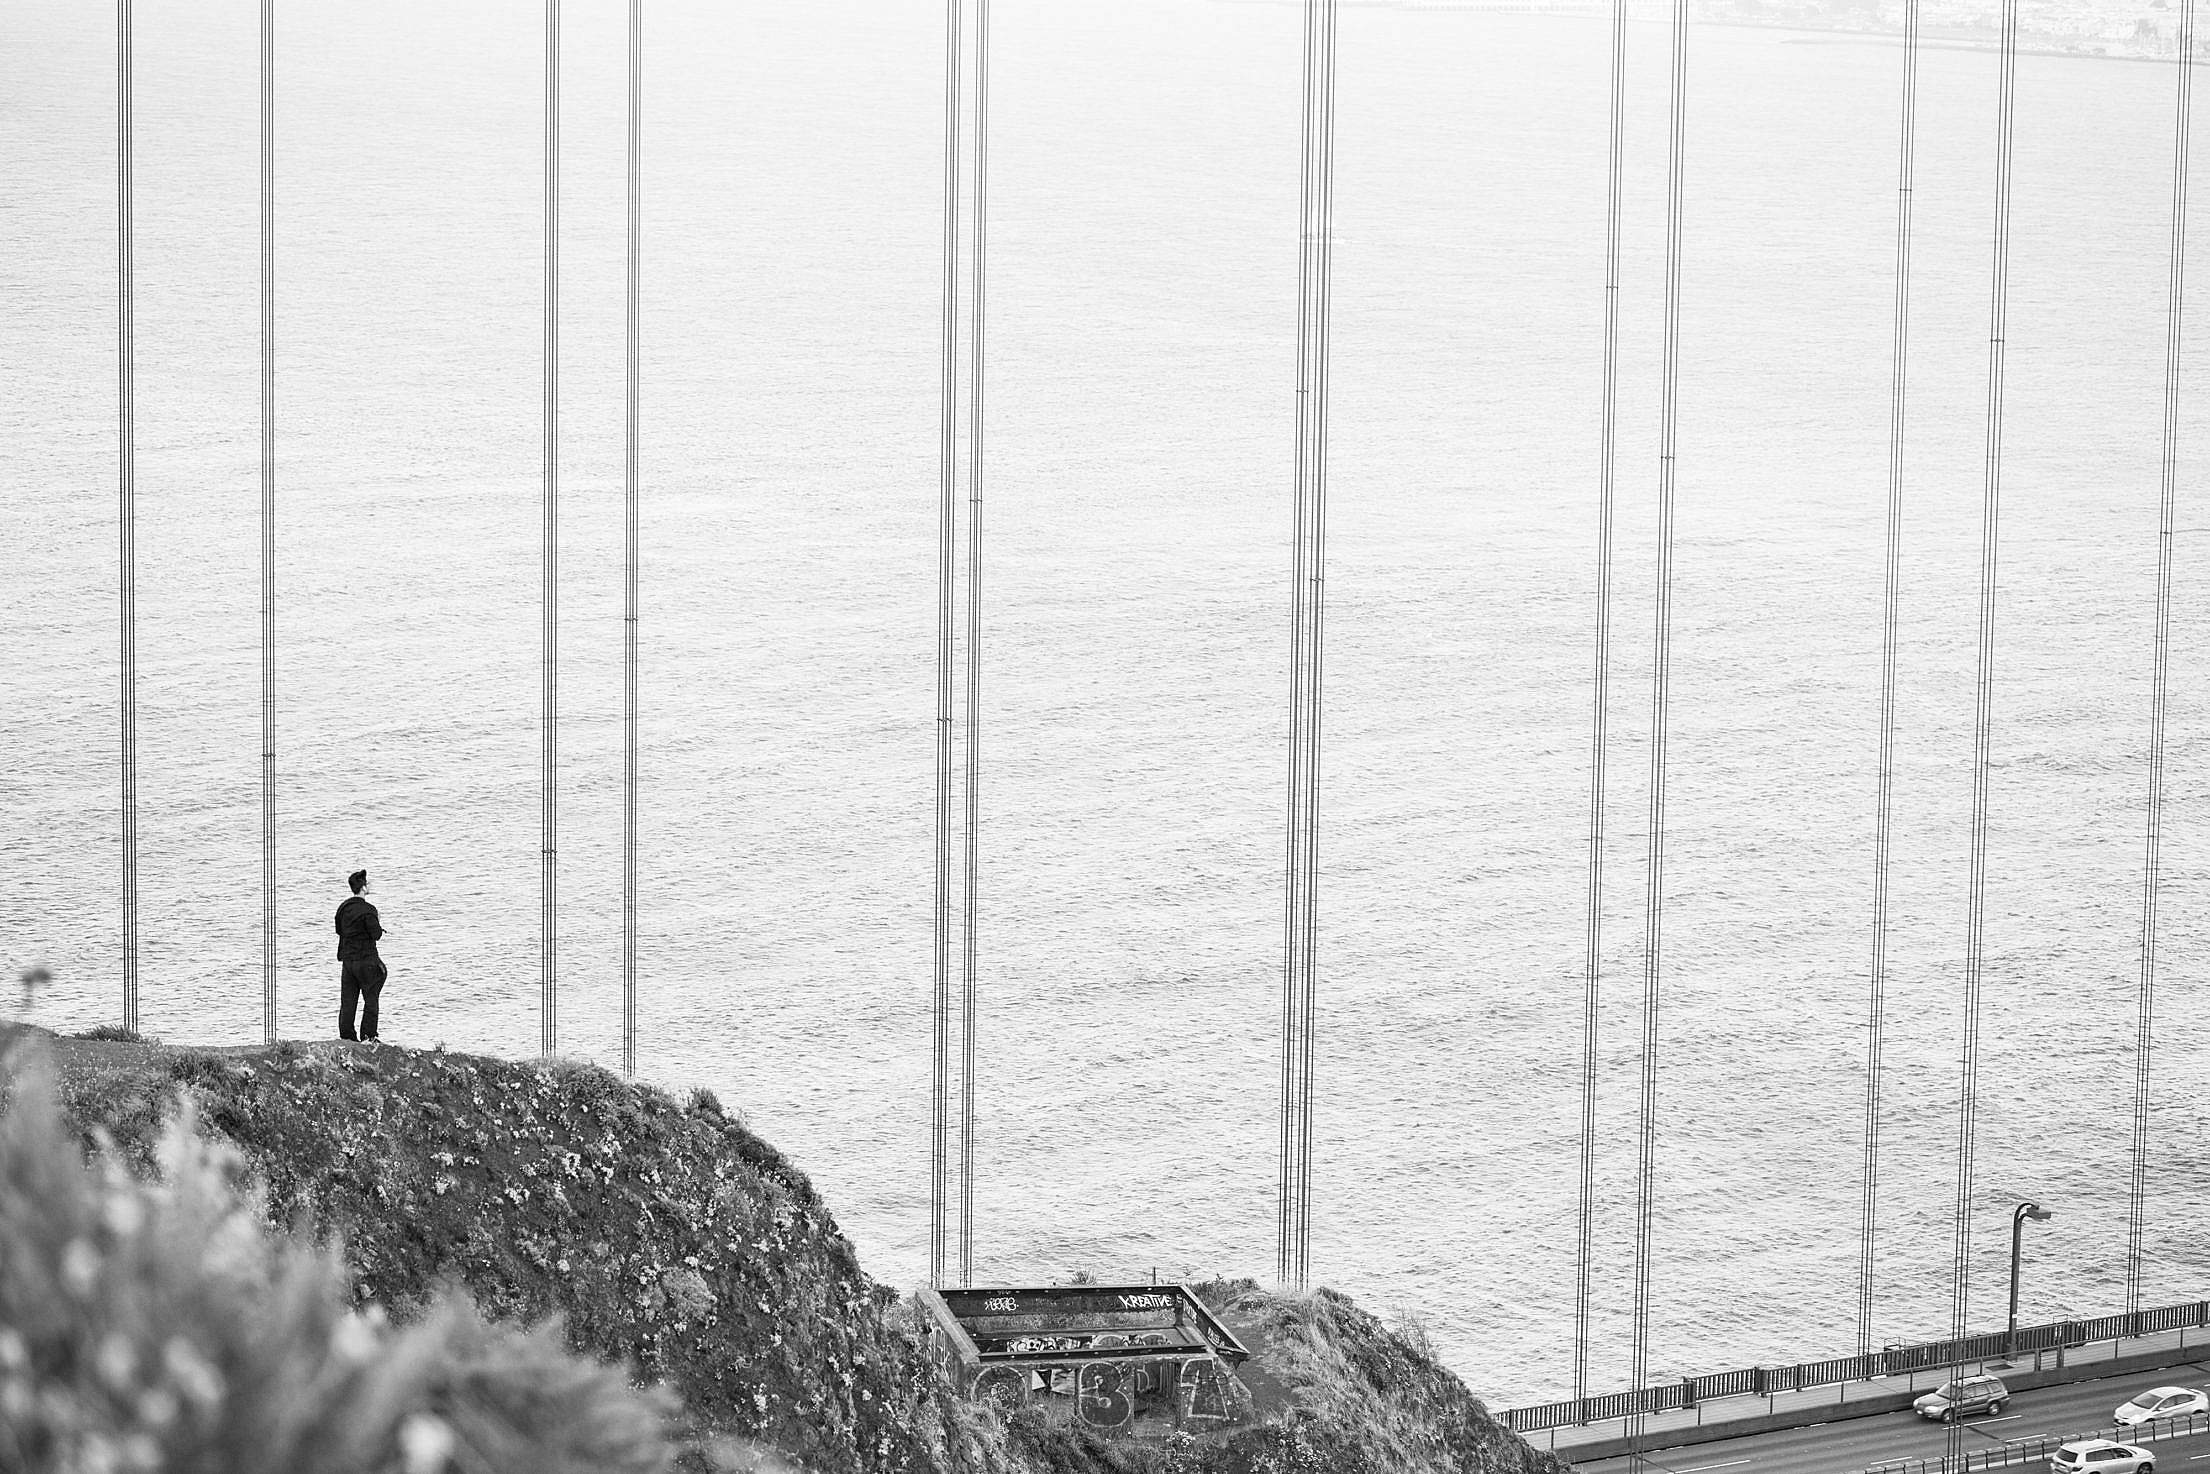 Man Stands at The Edge of The Cliff Near The Golden Gate Bridge Free Stock Photo